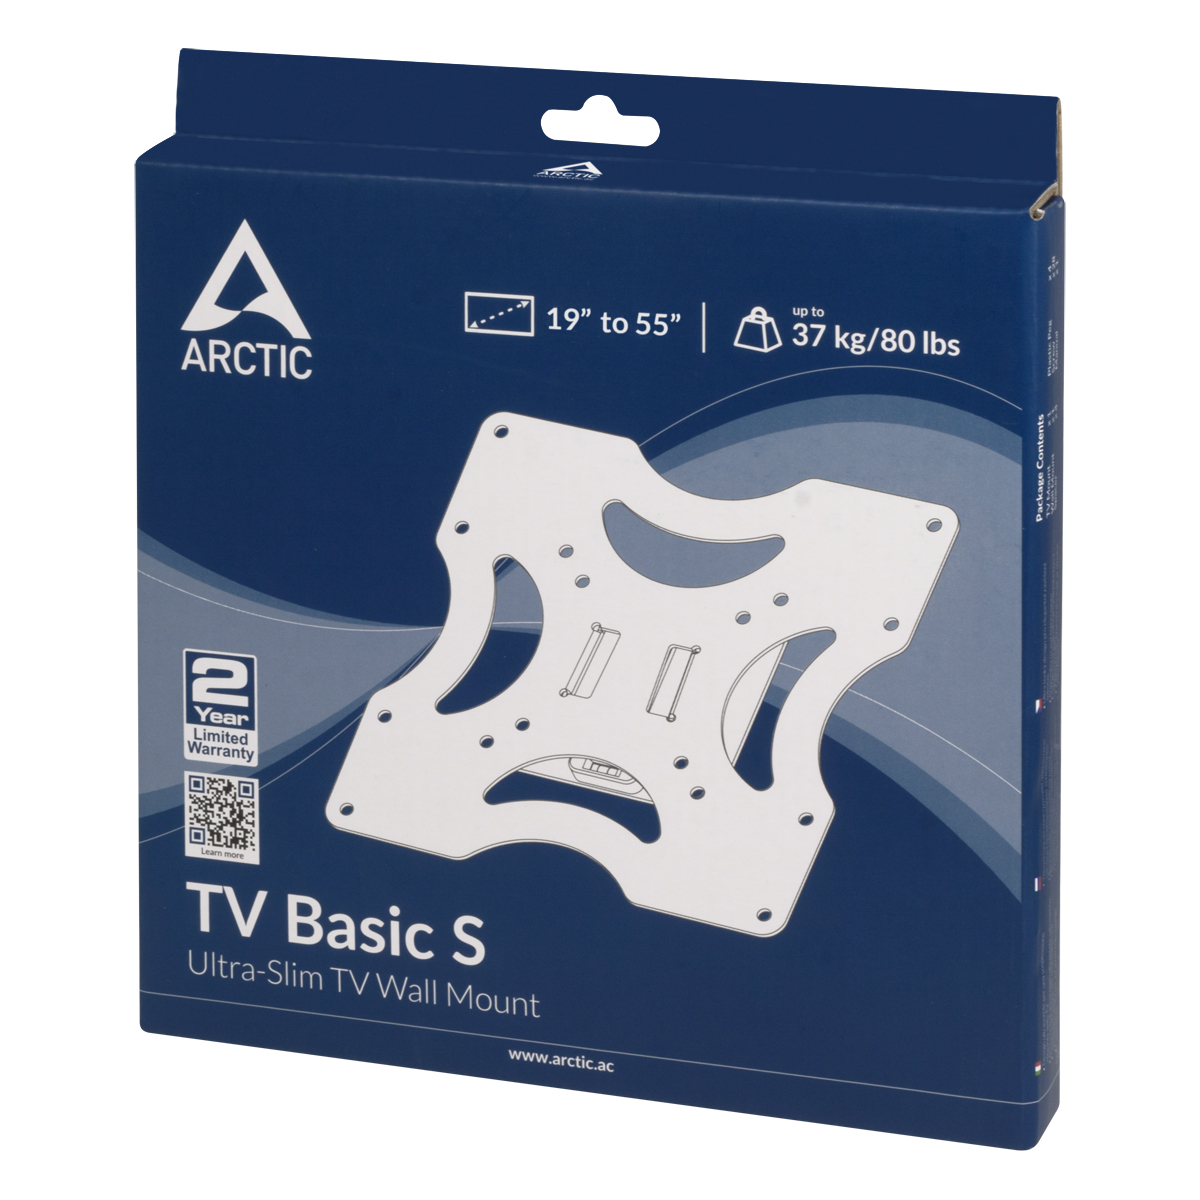 Slim TV Wall Mount ARCTIC TV Basic S Packaging Front View